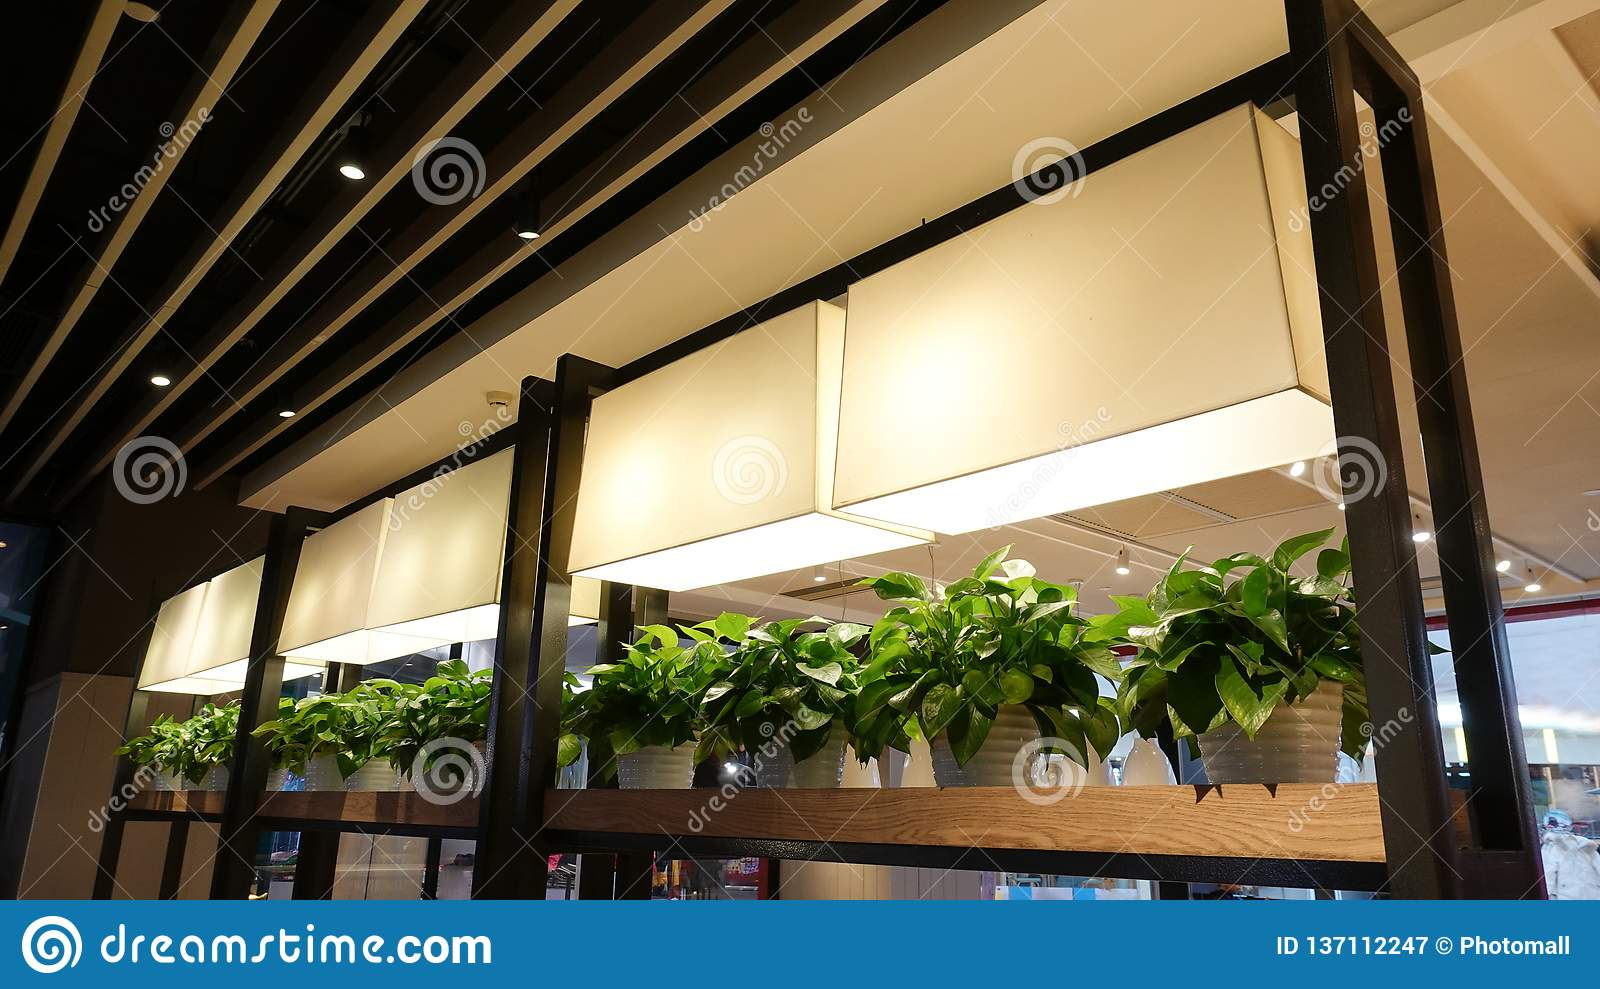 Led plant growth lamp seedling in commercial building